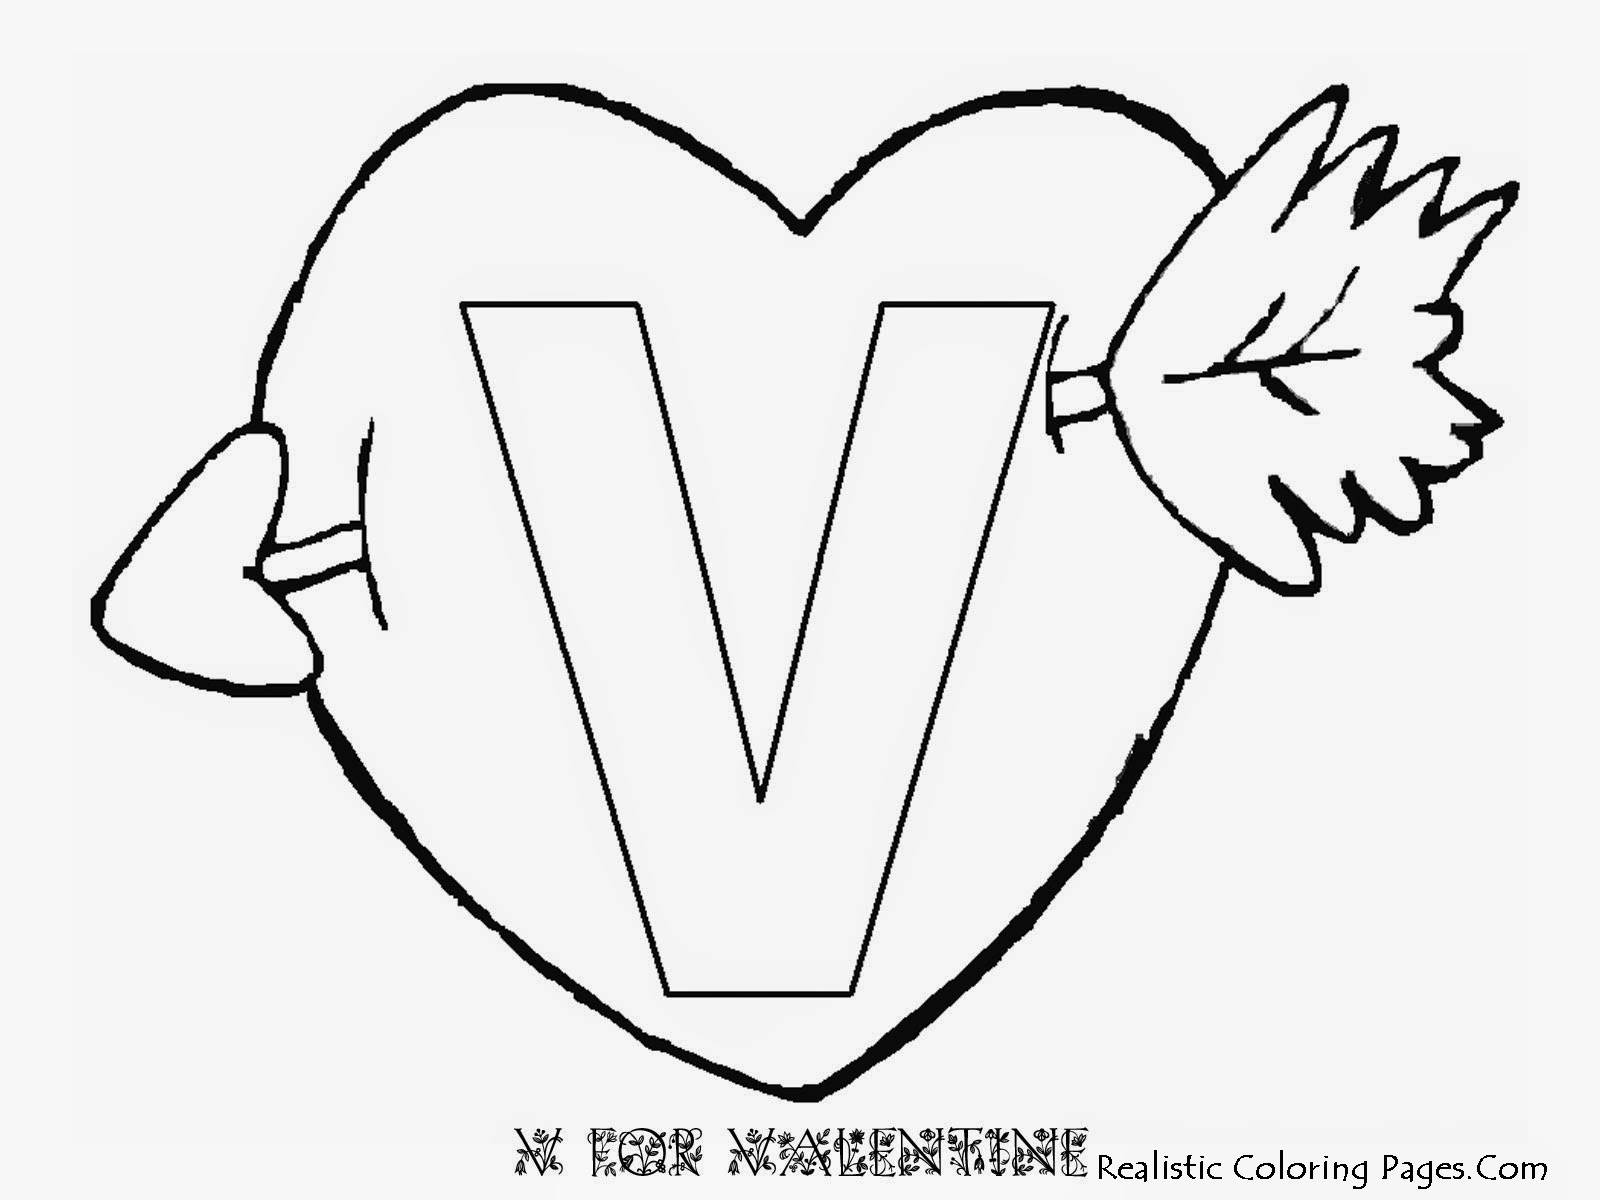 v letter coloring pages - photo #18